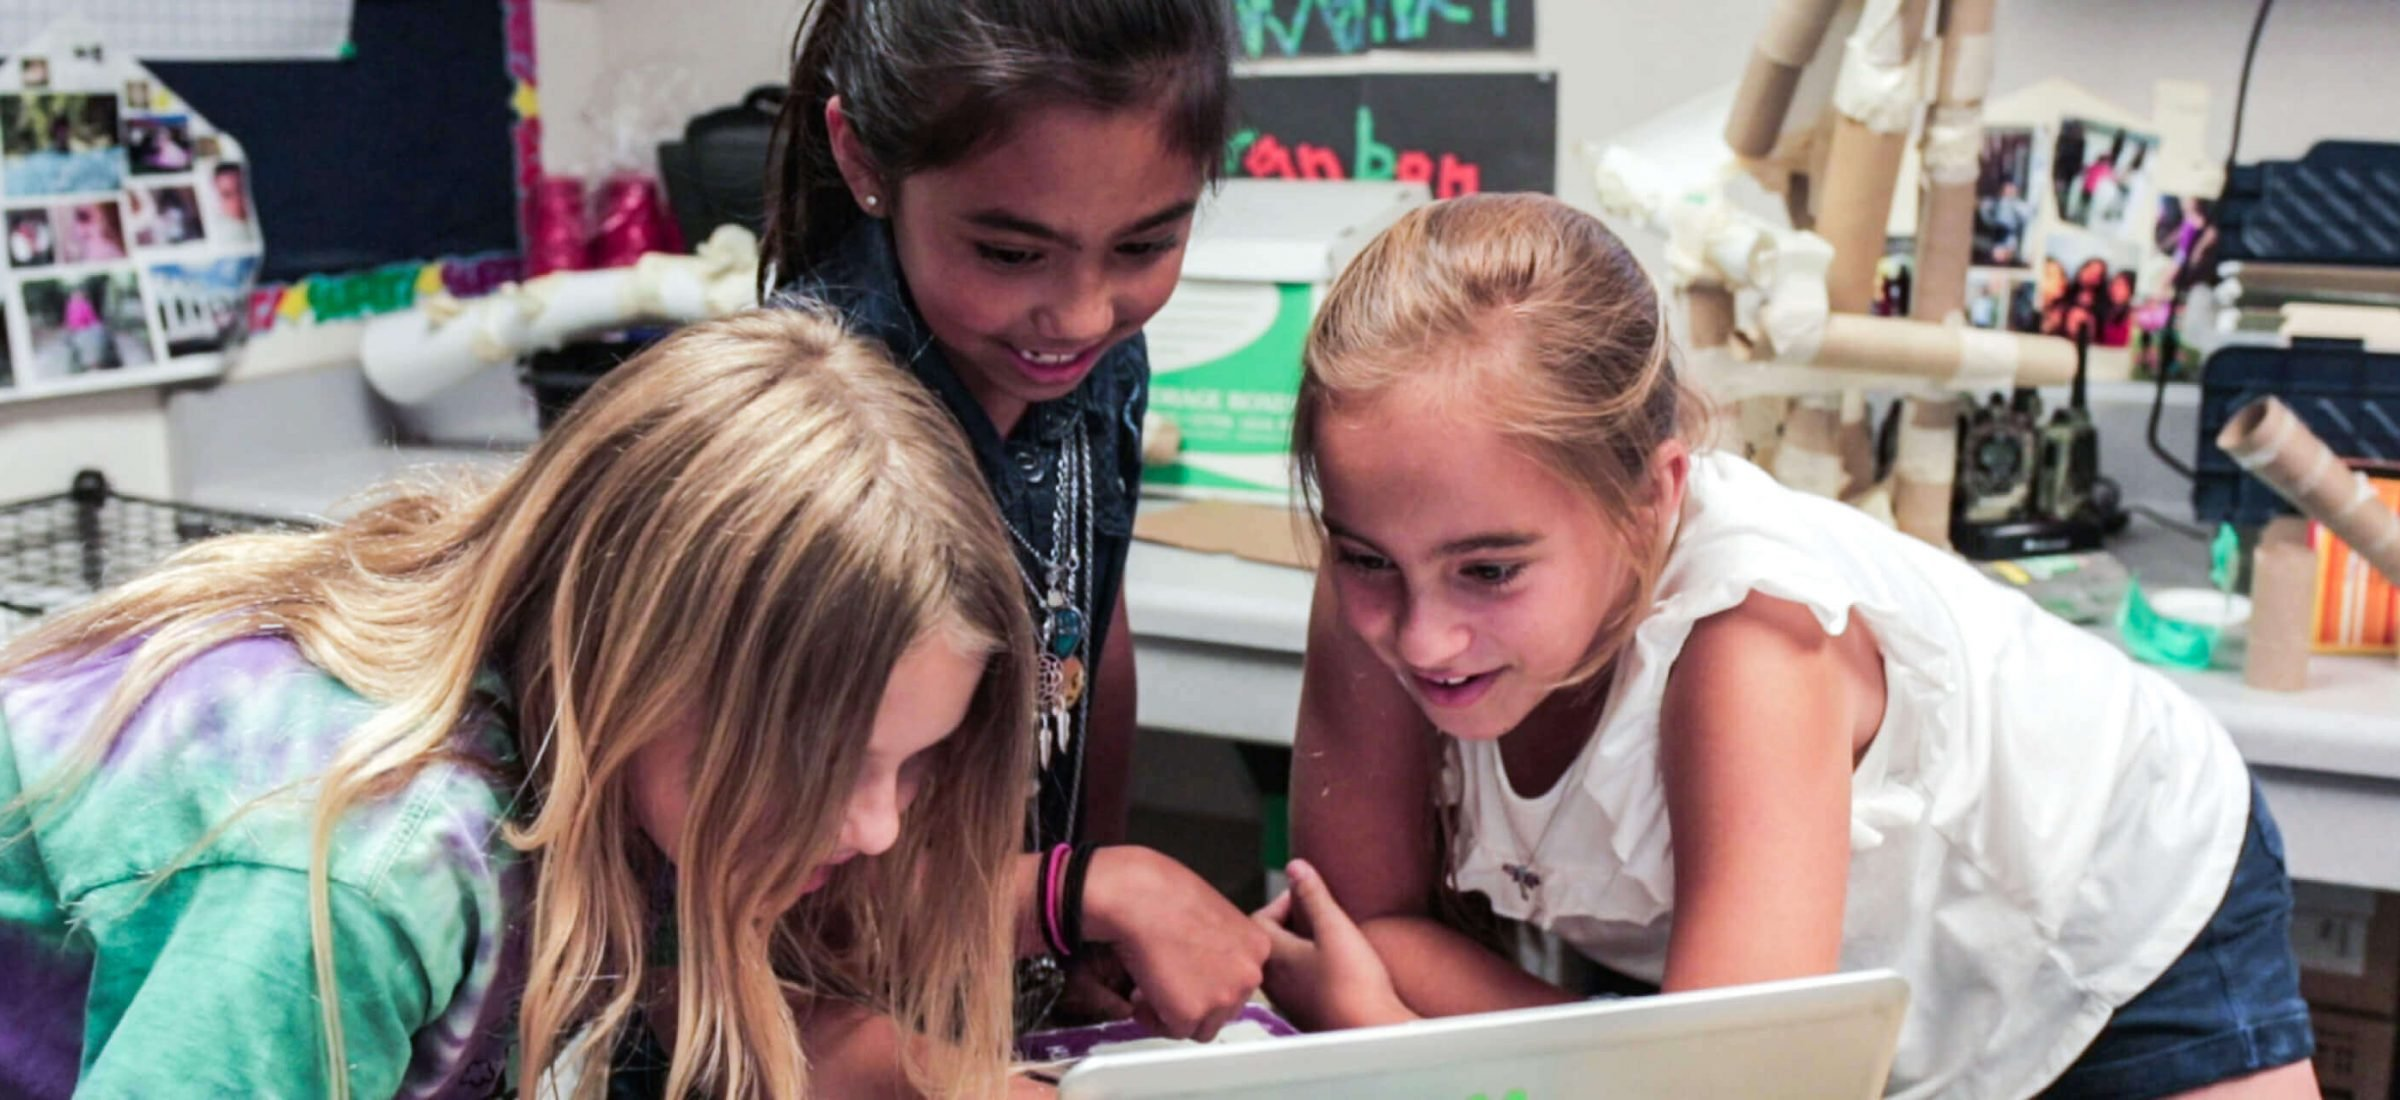 Easy, collaborative learning at Desert Sands Unified School District